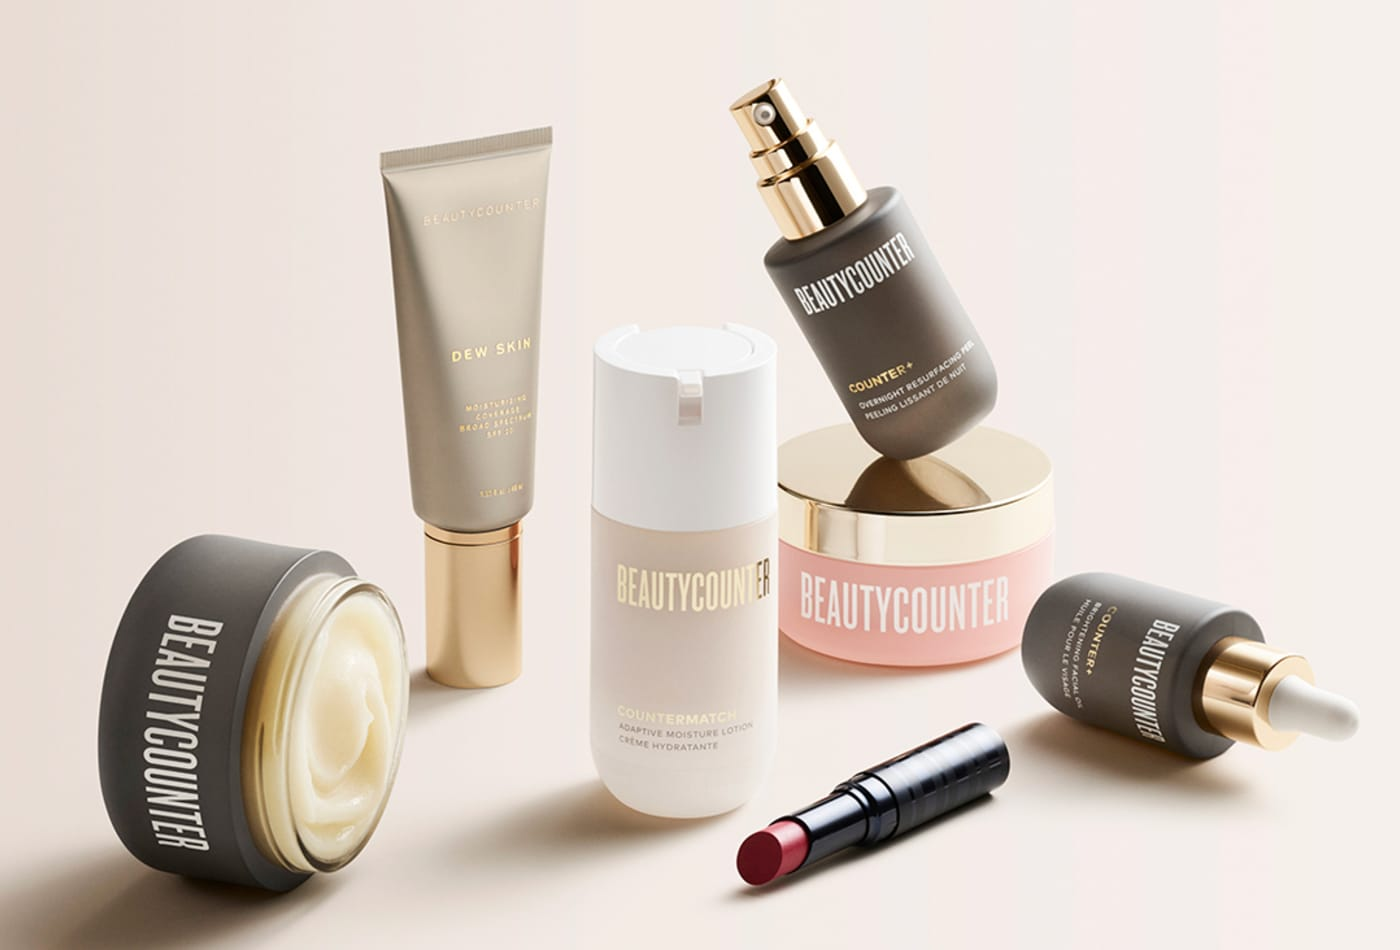 Private equity giant Carlyle Group values Beautycounter at $1 billion in bet on 'clean' cosmetics